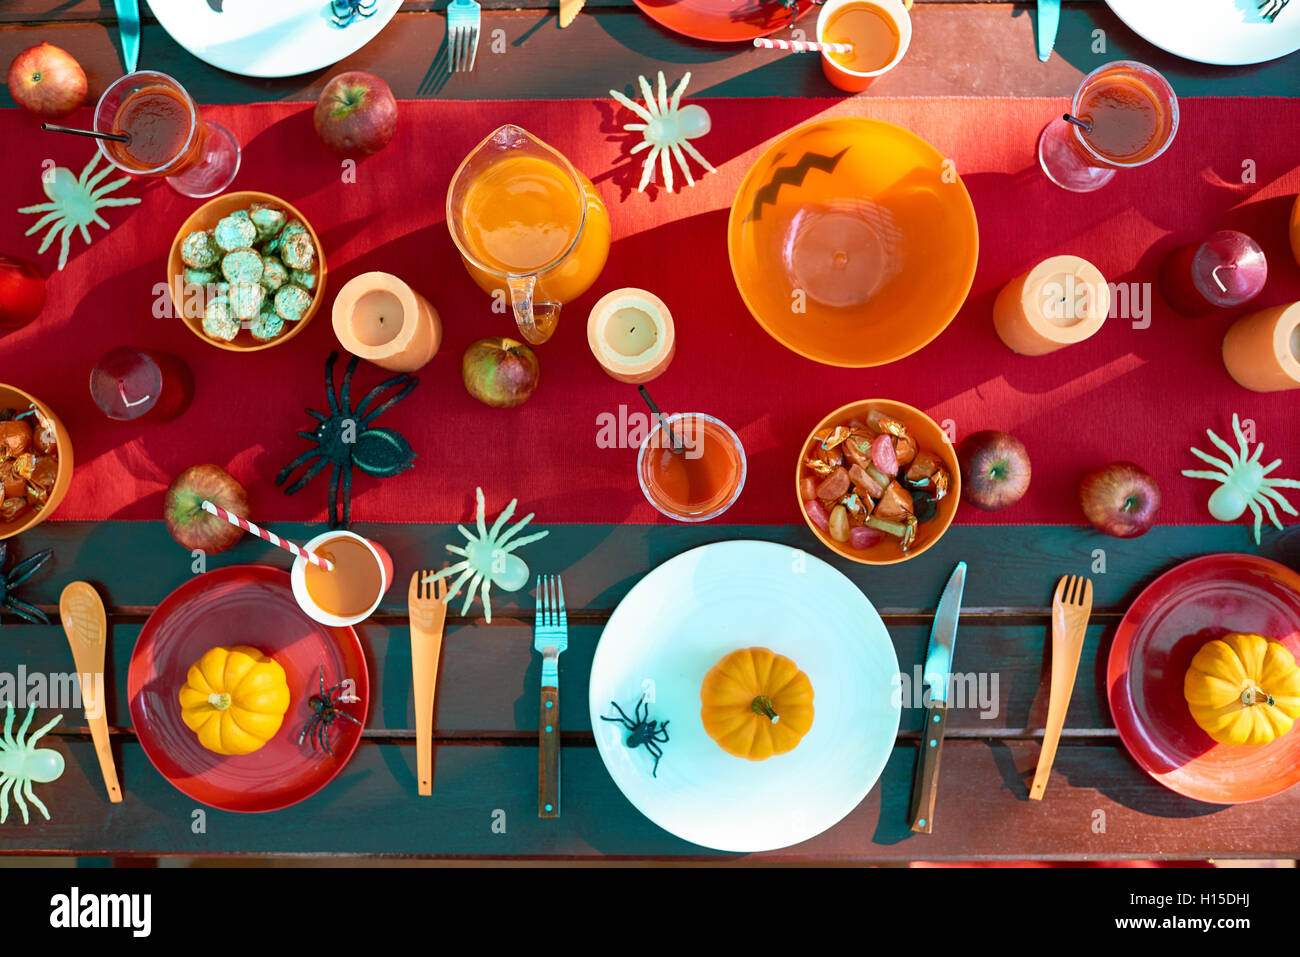 Trick-or-treat festivite Photo Stock